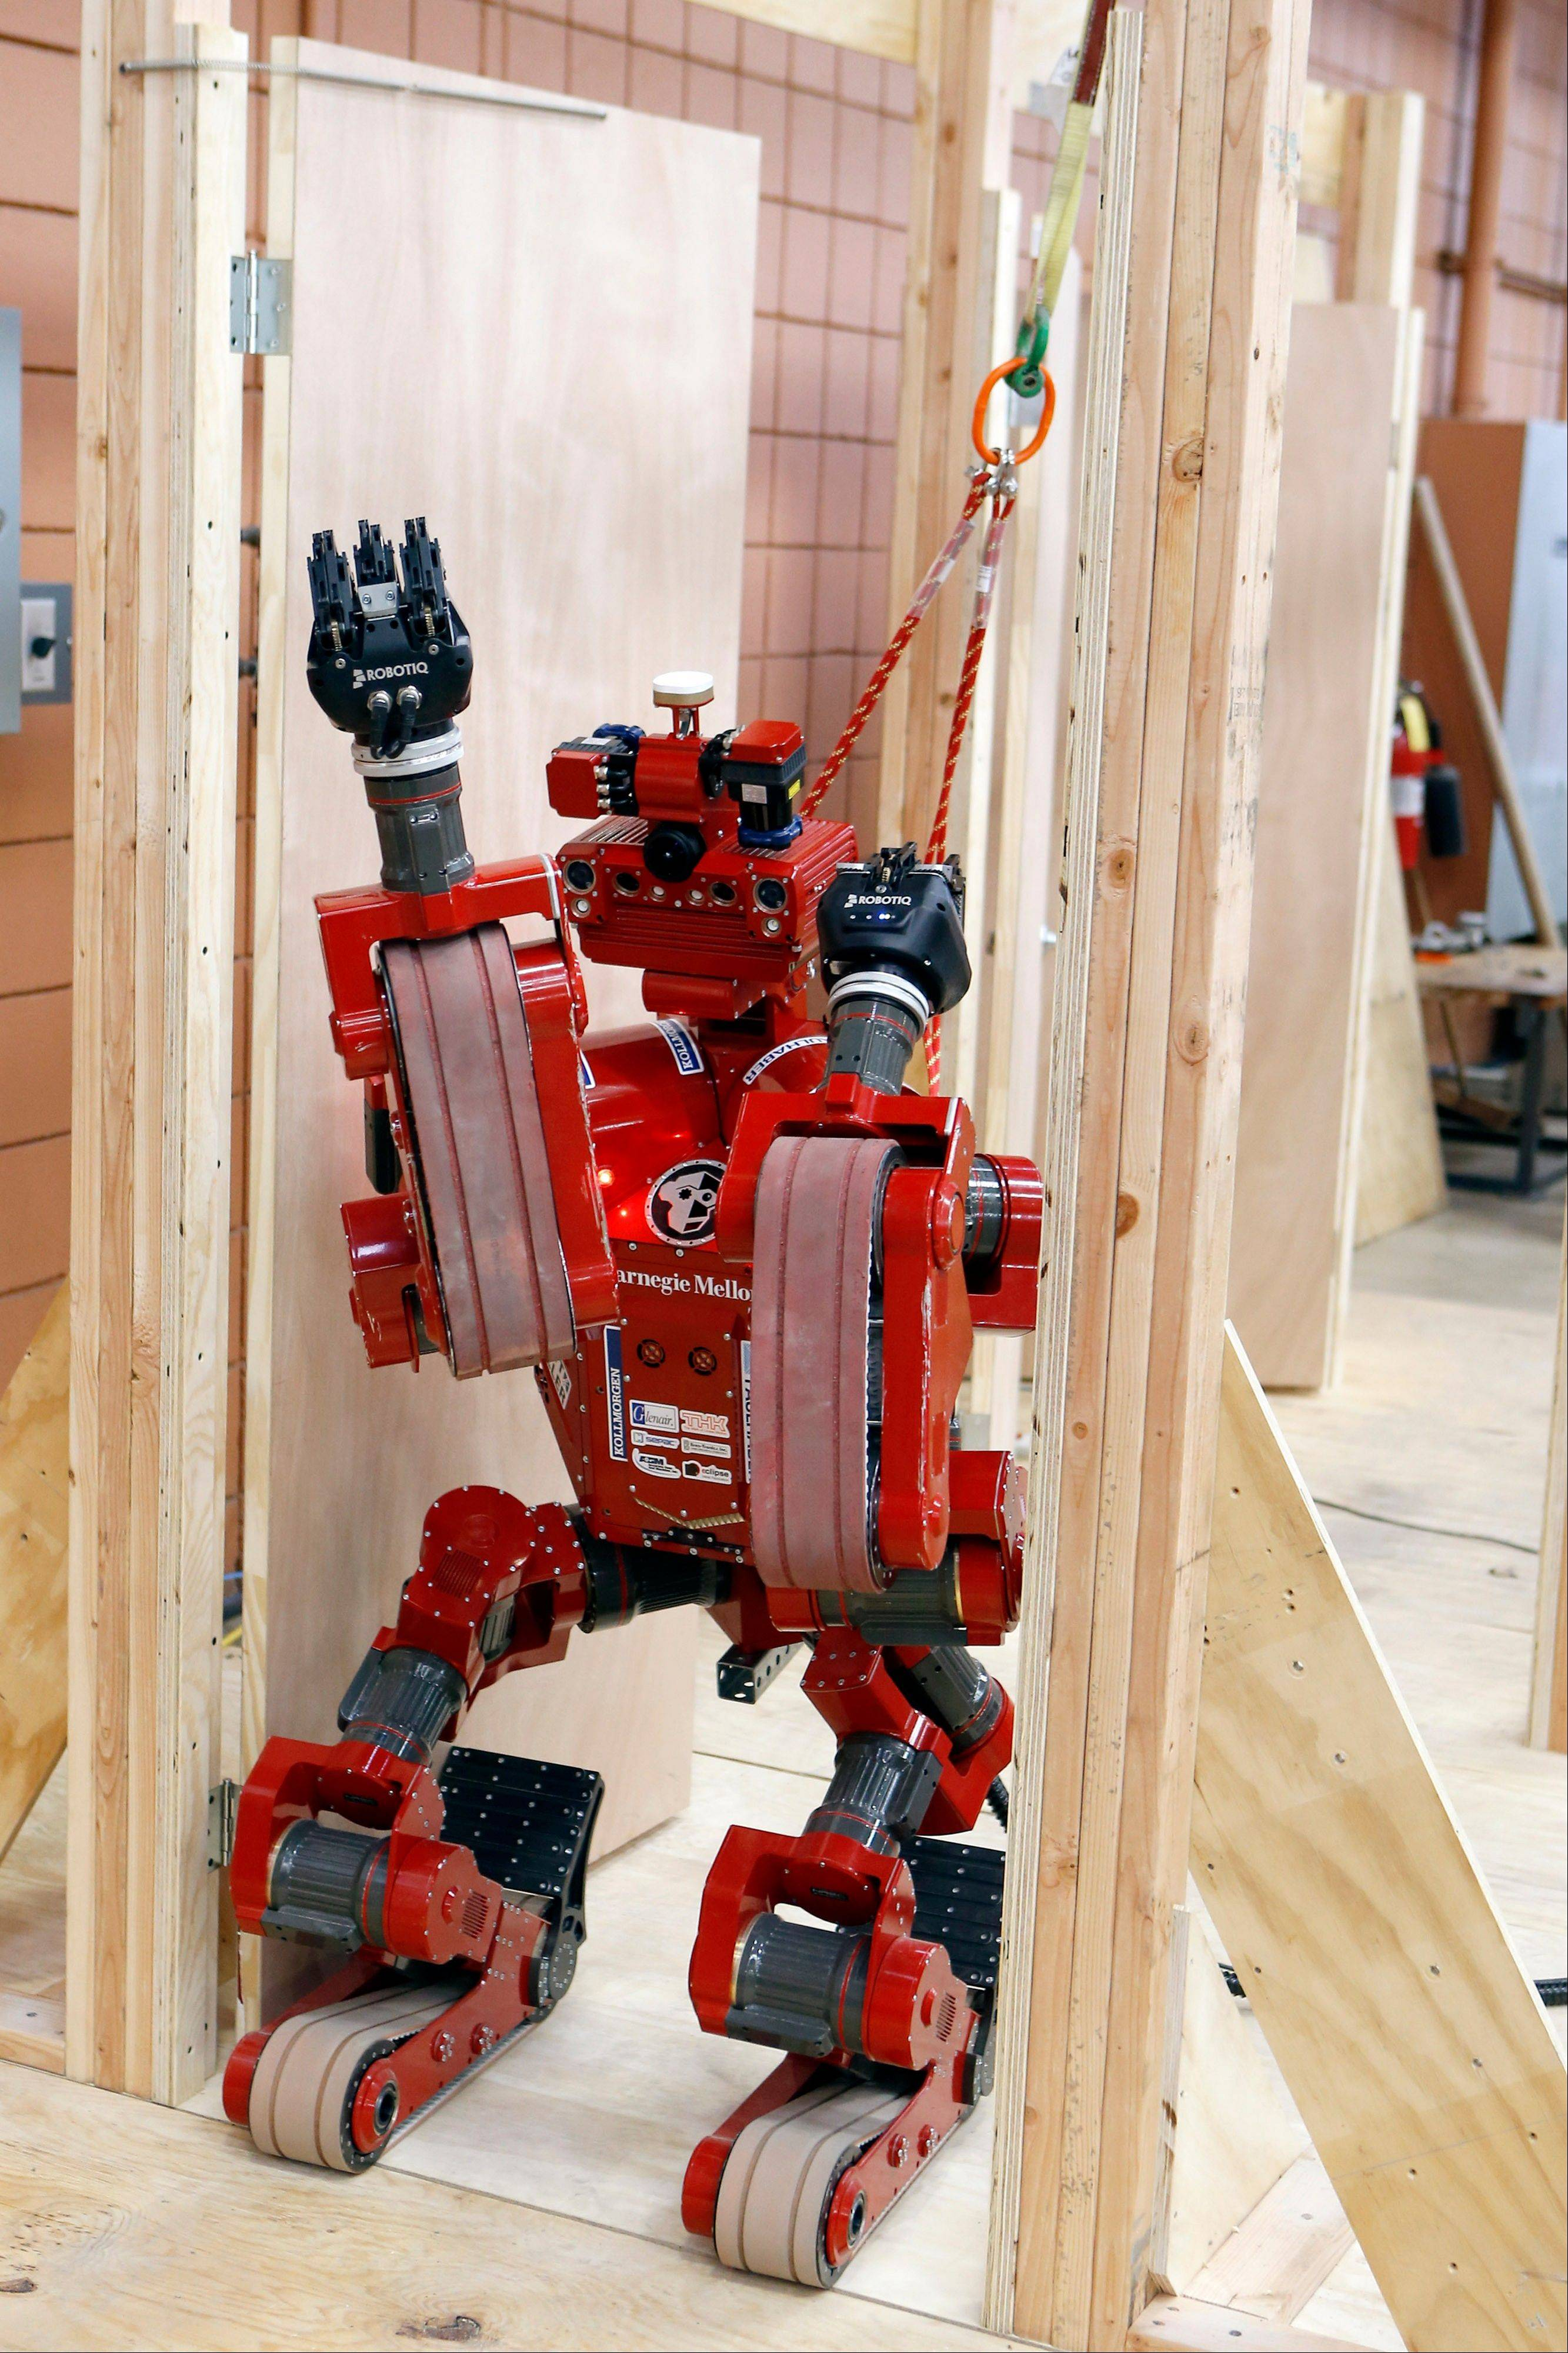 The CMU Highly Intelligent Mobile Platform robot, known as CHIMP, performs a set of doorway tests during a preparation run at the National Robotics Engineering Center in Pittsburgh. Carnegie Mellon researchers are testing the new search-and-rescue robot that will compete in the U.S. Defense Department's upcoming national robotics competition in Florida. Competitors from other schools and companies will be vying for a $2 million U.S. Defense Department prize.